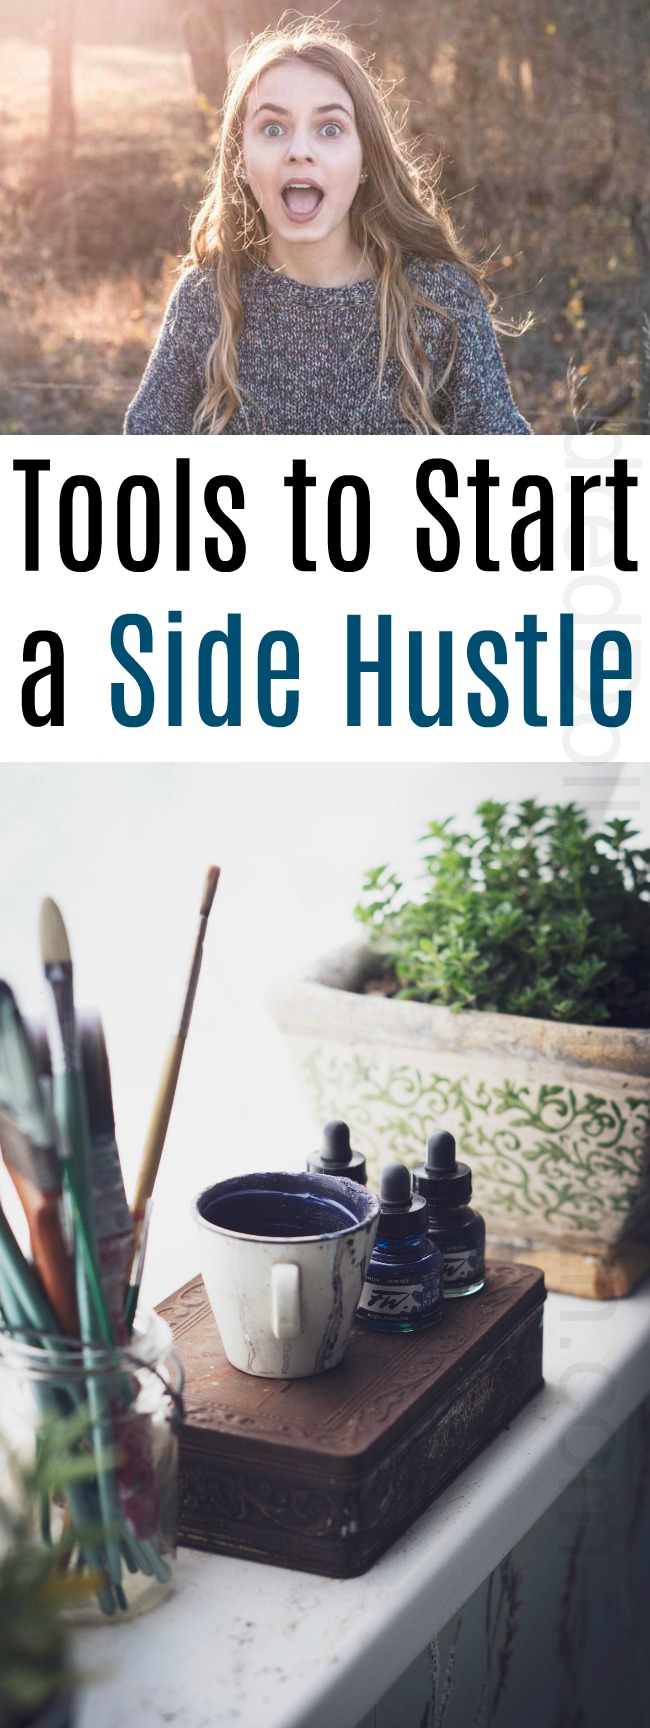 Spotlight, $100 a Month: Tools to Start a Side Hustle